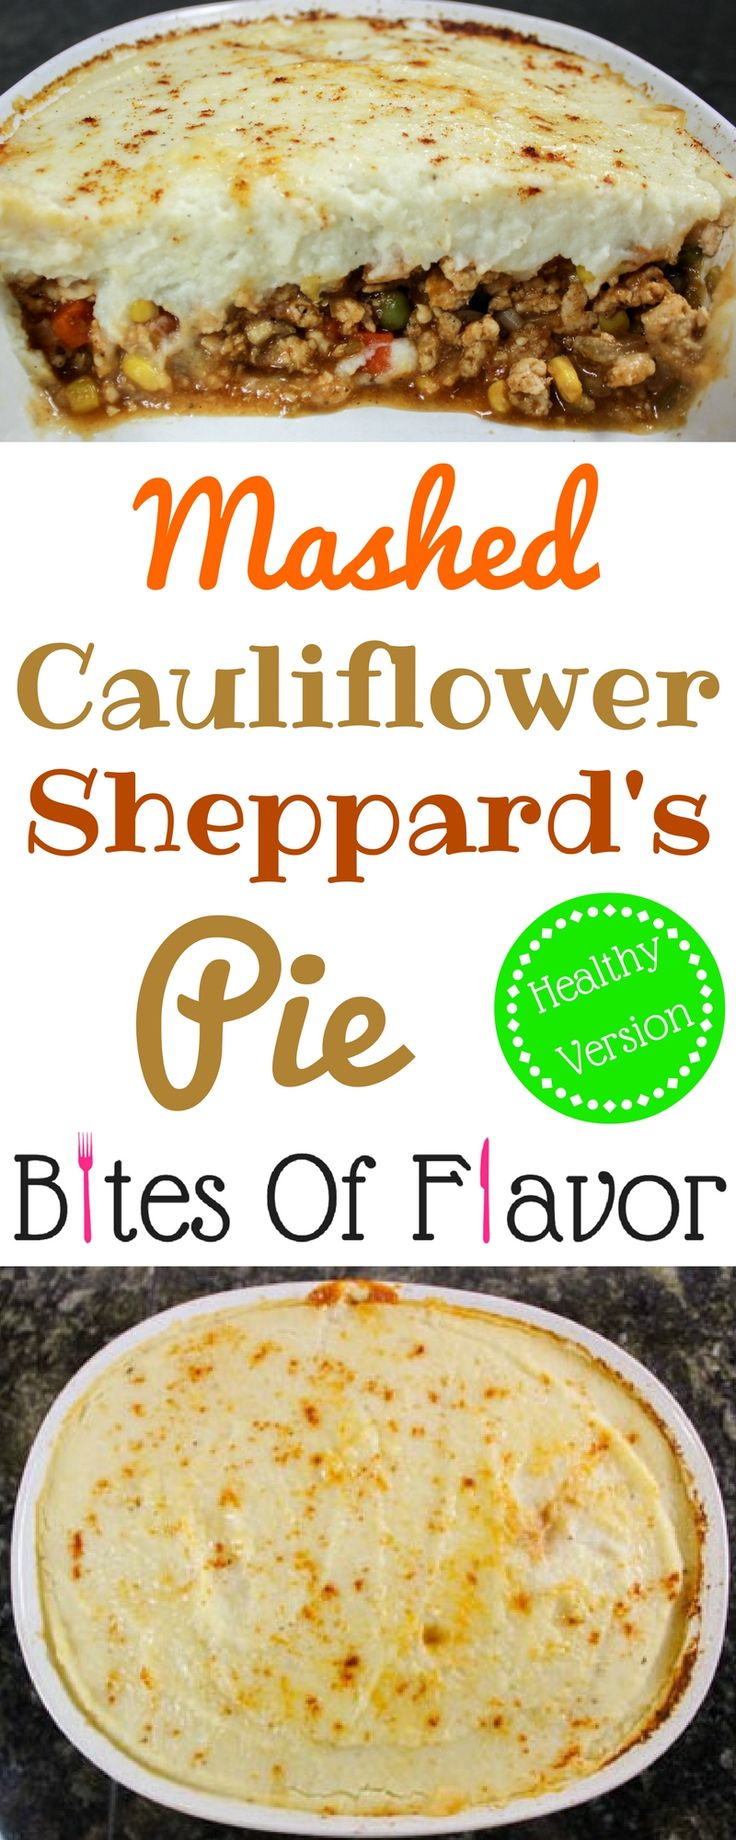 Mashed Cauliflower Sheppard's Pie- Guilt-free sheppard's pie with savory, spiced meat & veggies topped with creamy mashed cauliflower.  All the flavors of the traditional recipe without the guilt.  Weight Watcher friendly recipe. www.bitesofflavor.com